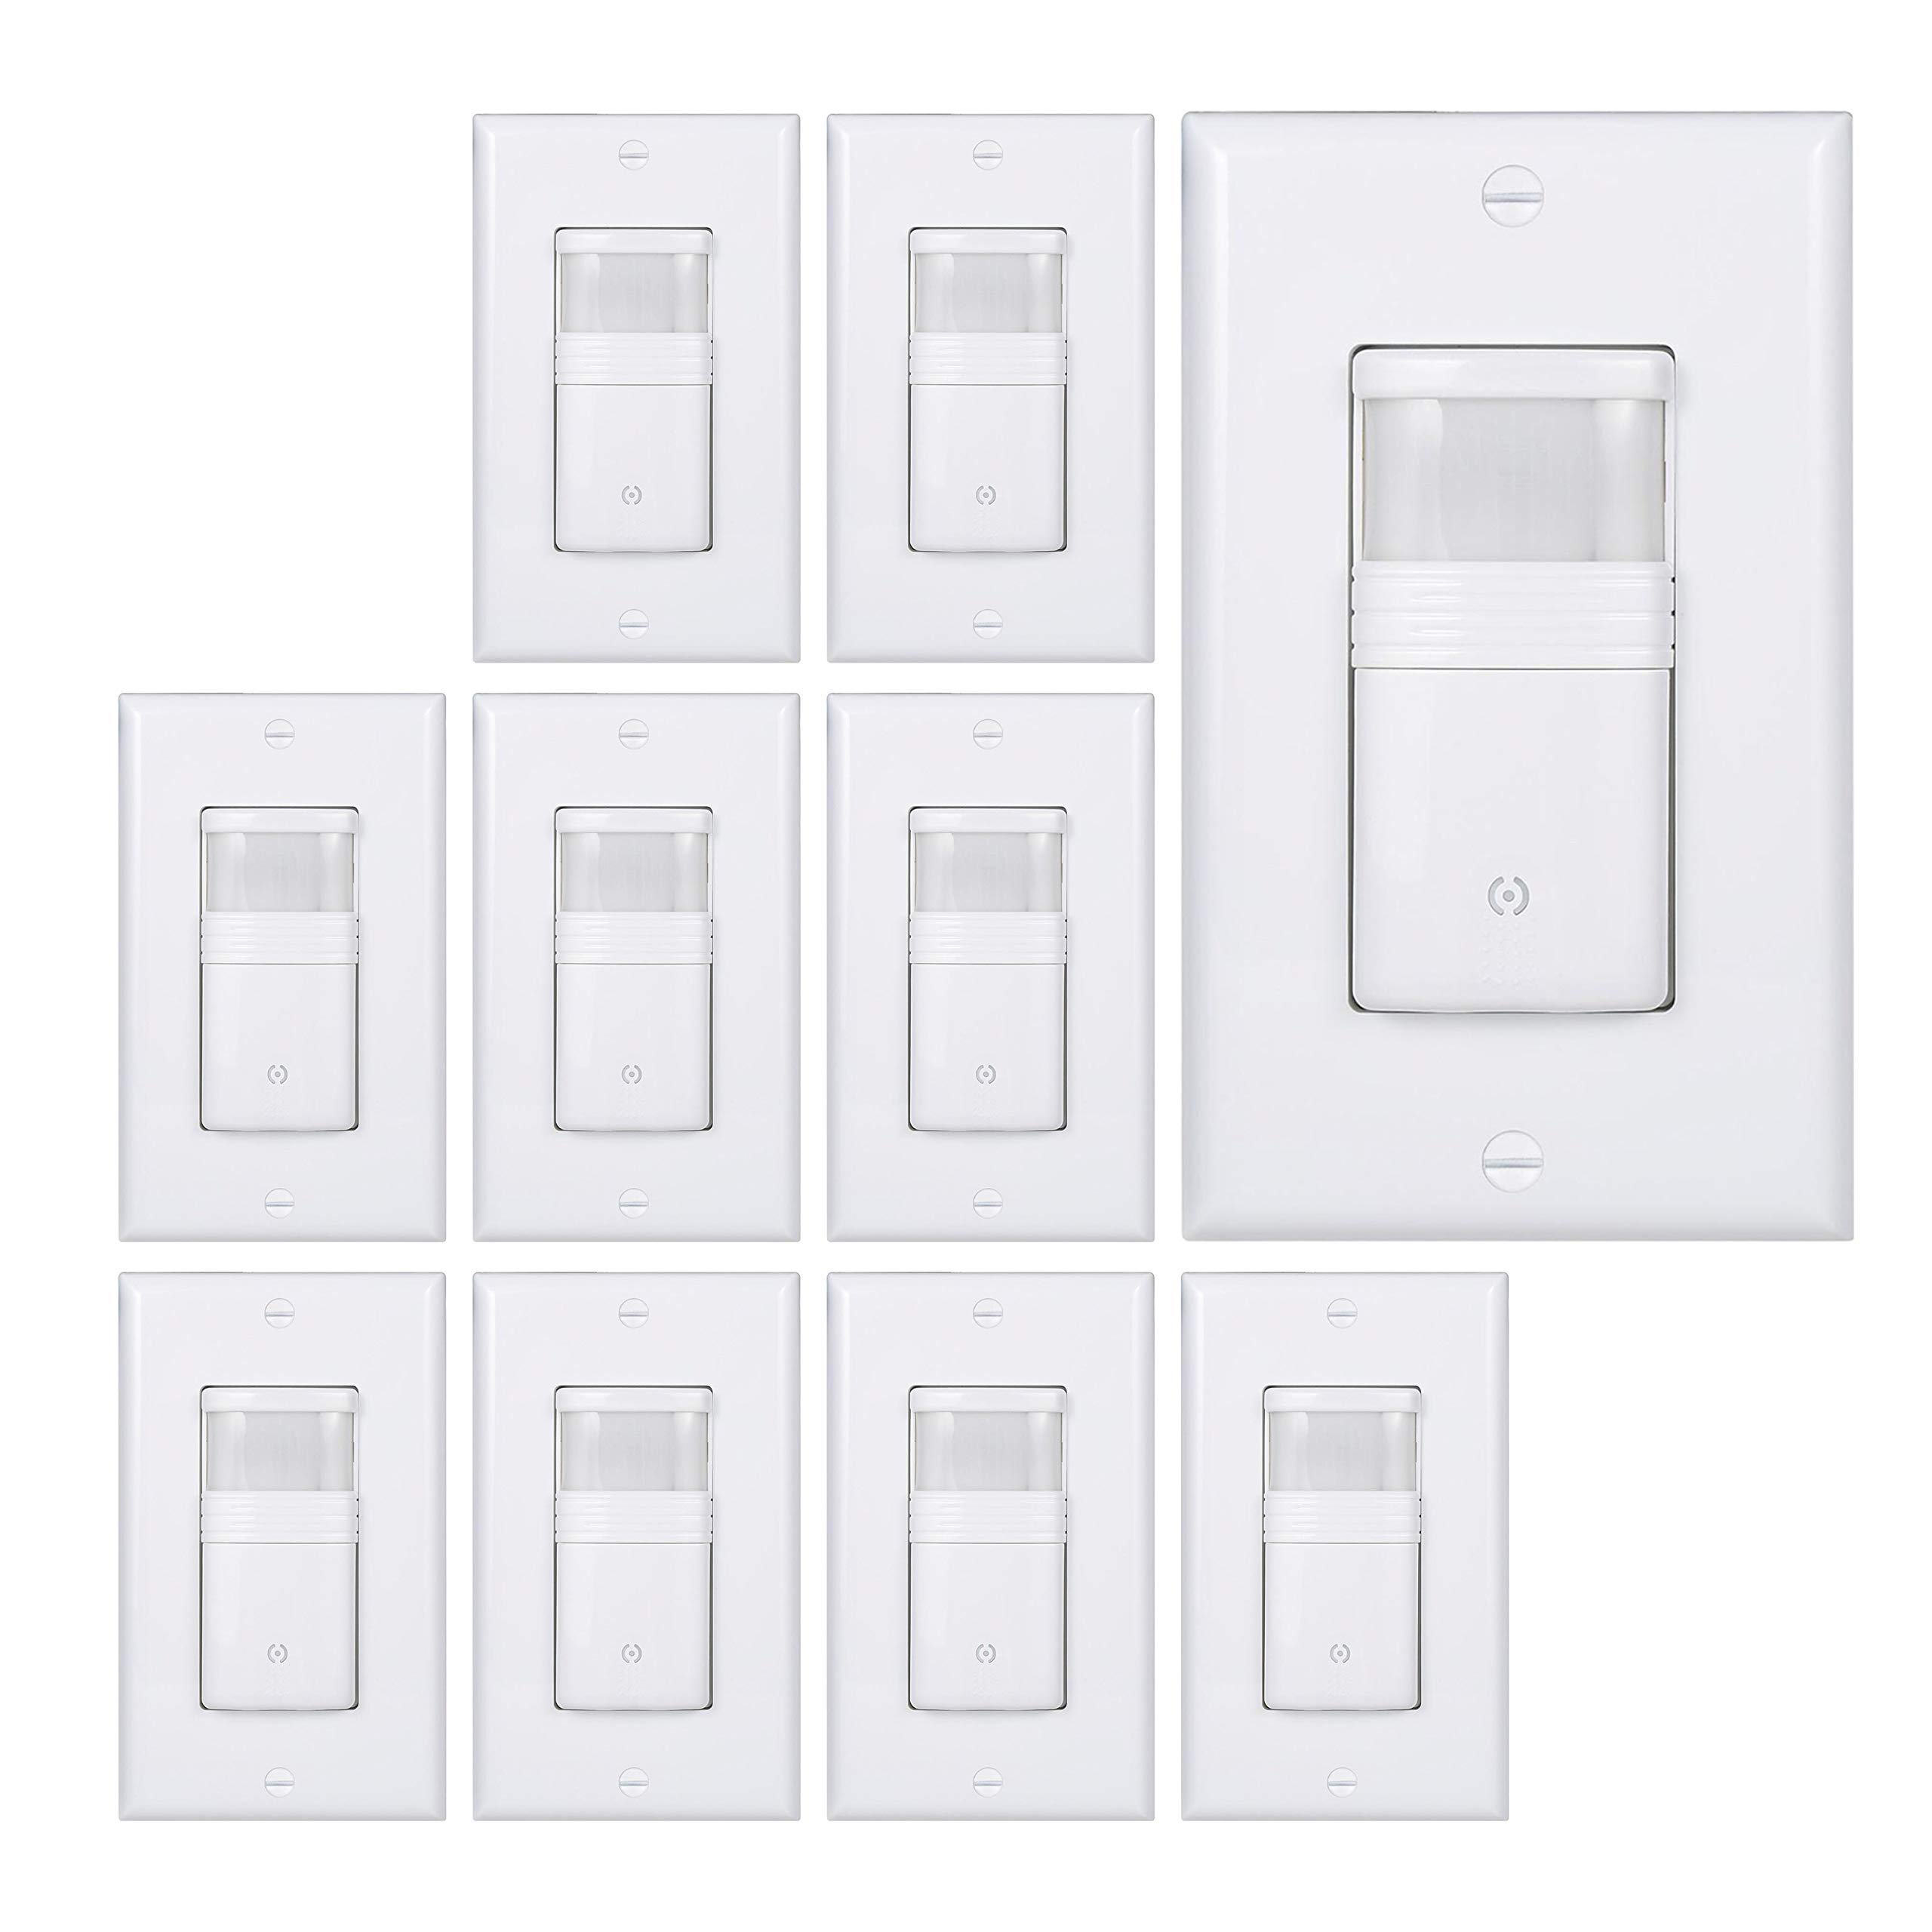 (Pack of 10) White Motion Sensor Light Switch - NEUTRAL Wire Required - Single Pole Only (Not 3-Way) - For Indoor Use - Vacancy & Occupancy Modes - Title 24, UL Certified - Adjustable Timer